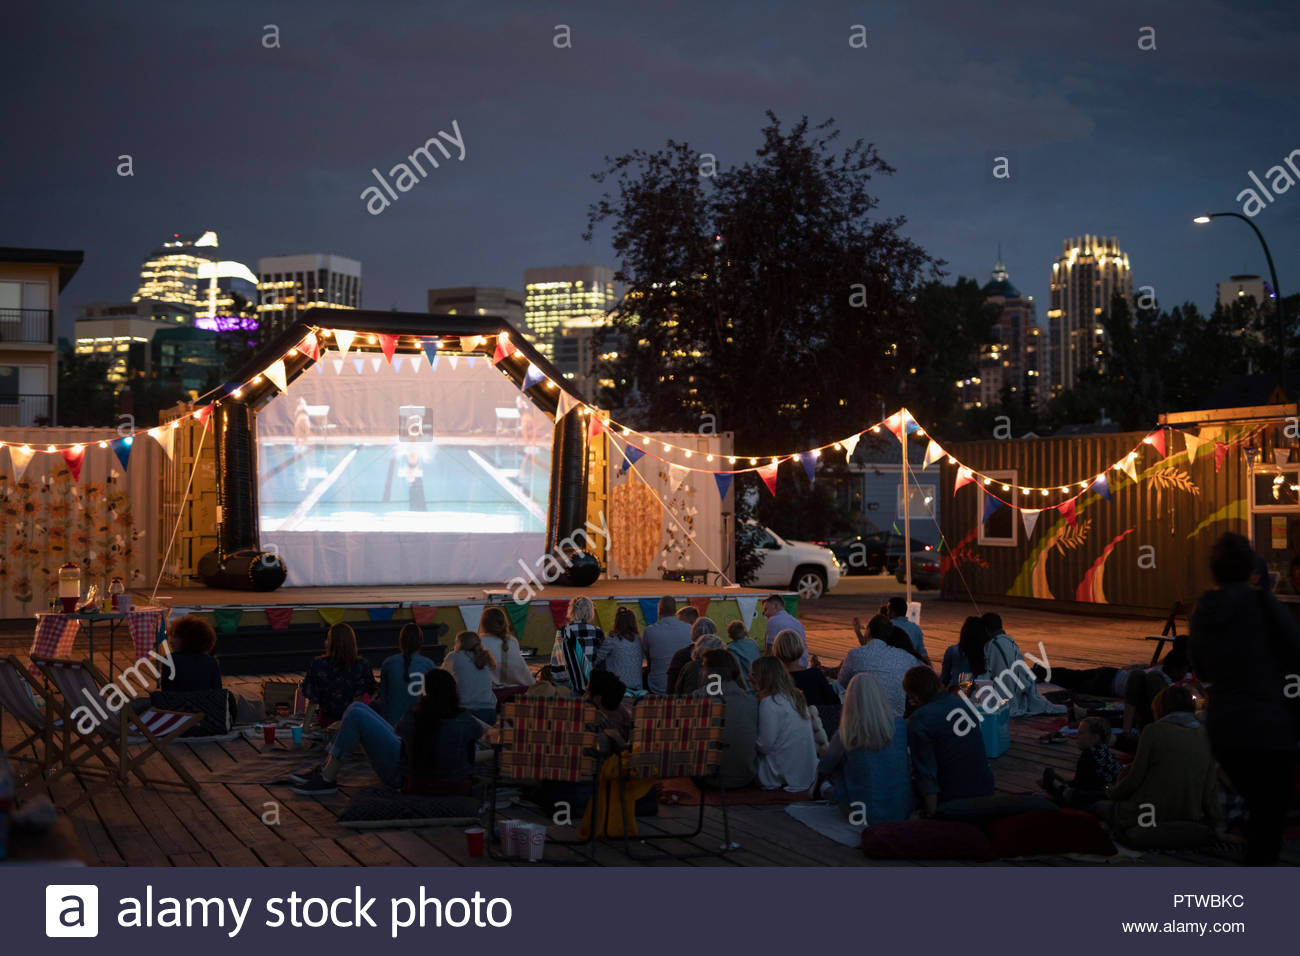 Crowd enjoying movie in the park in urban park - Stock Image